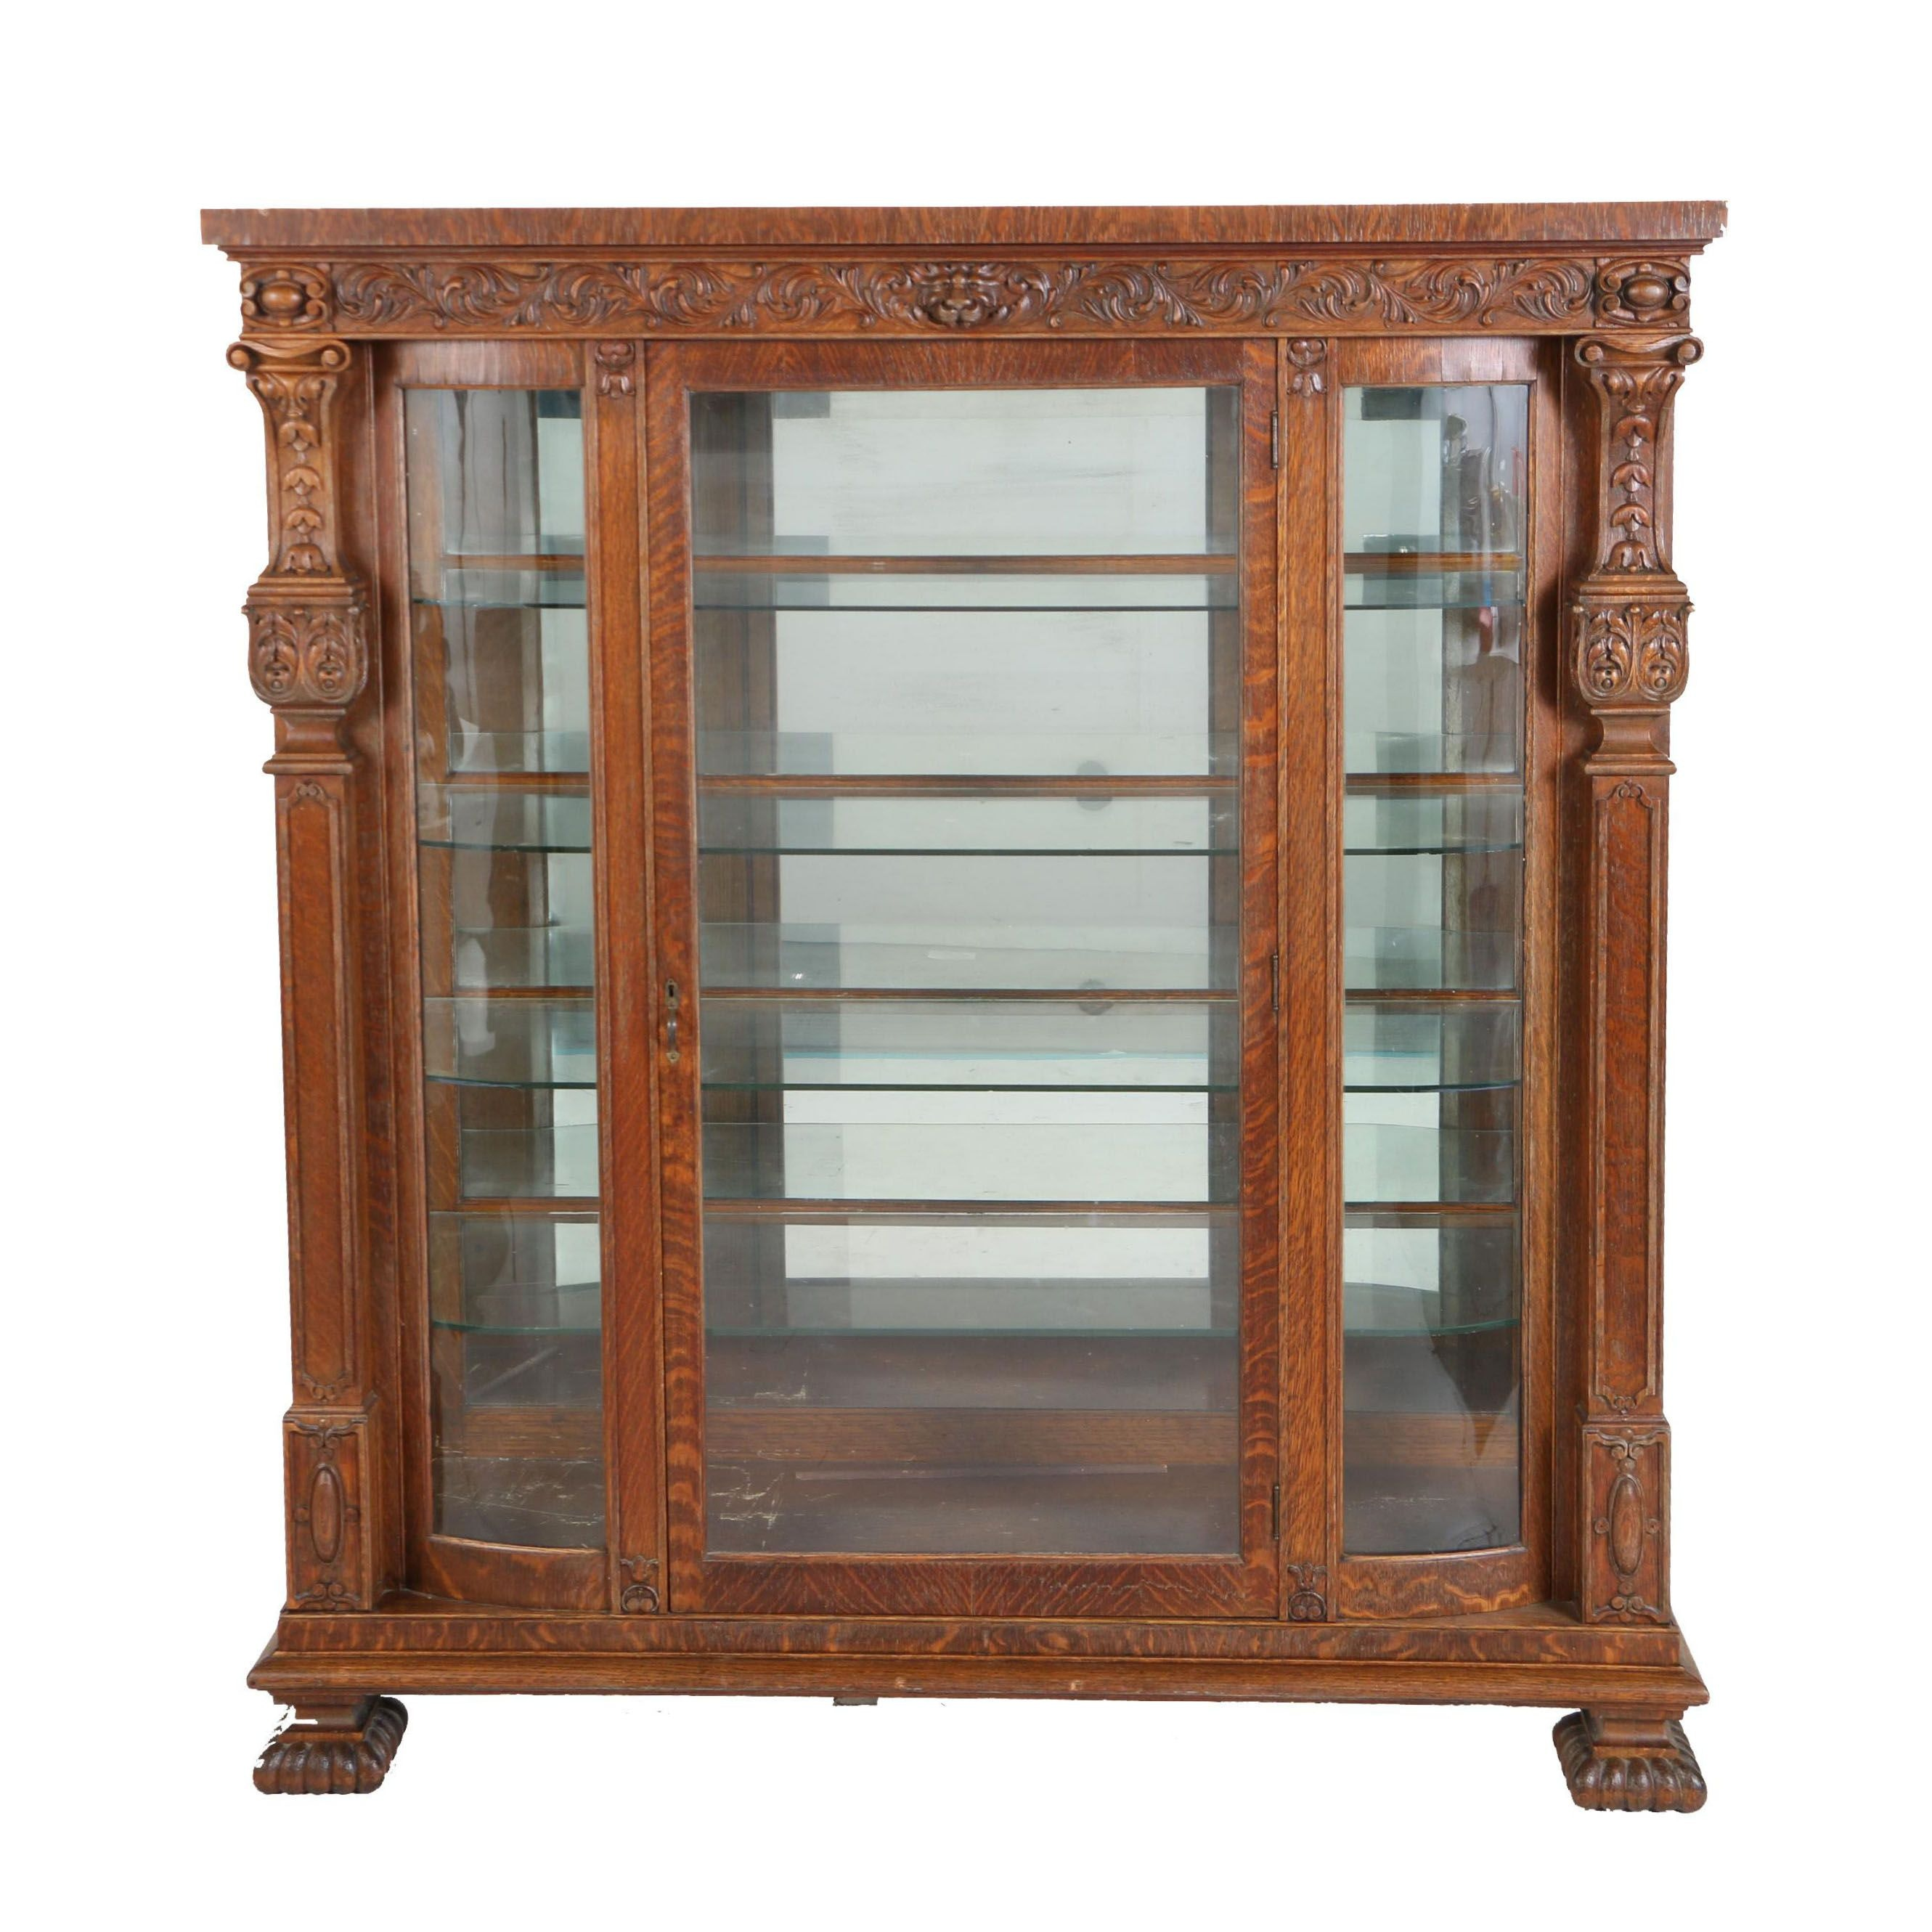 Victorian Renaissance Revival Oak Display Cabinet, Circa 1900